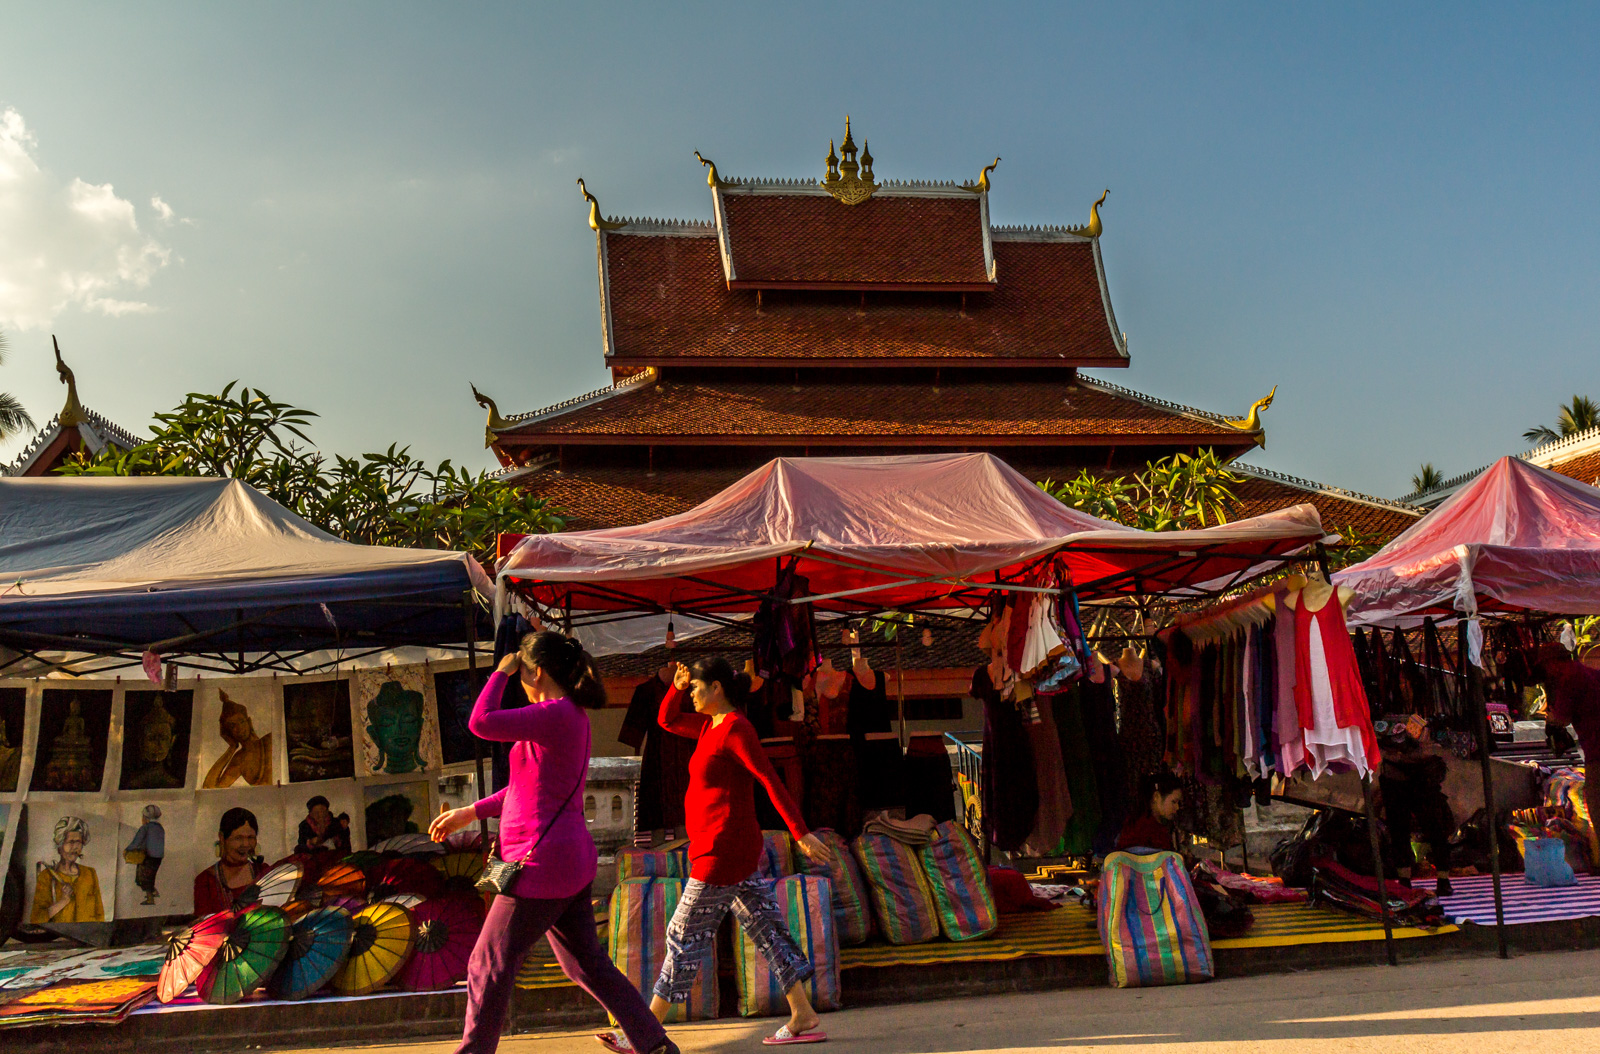 Strolling past the night market.